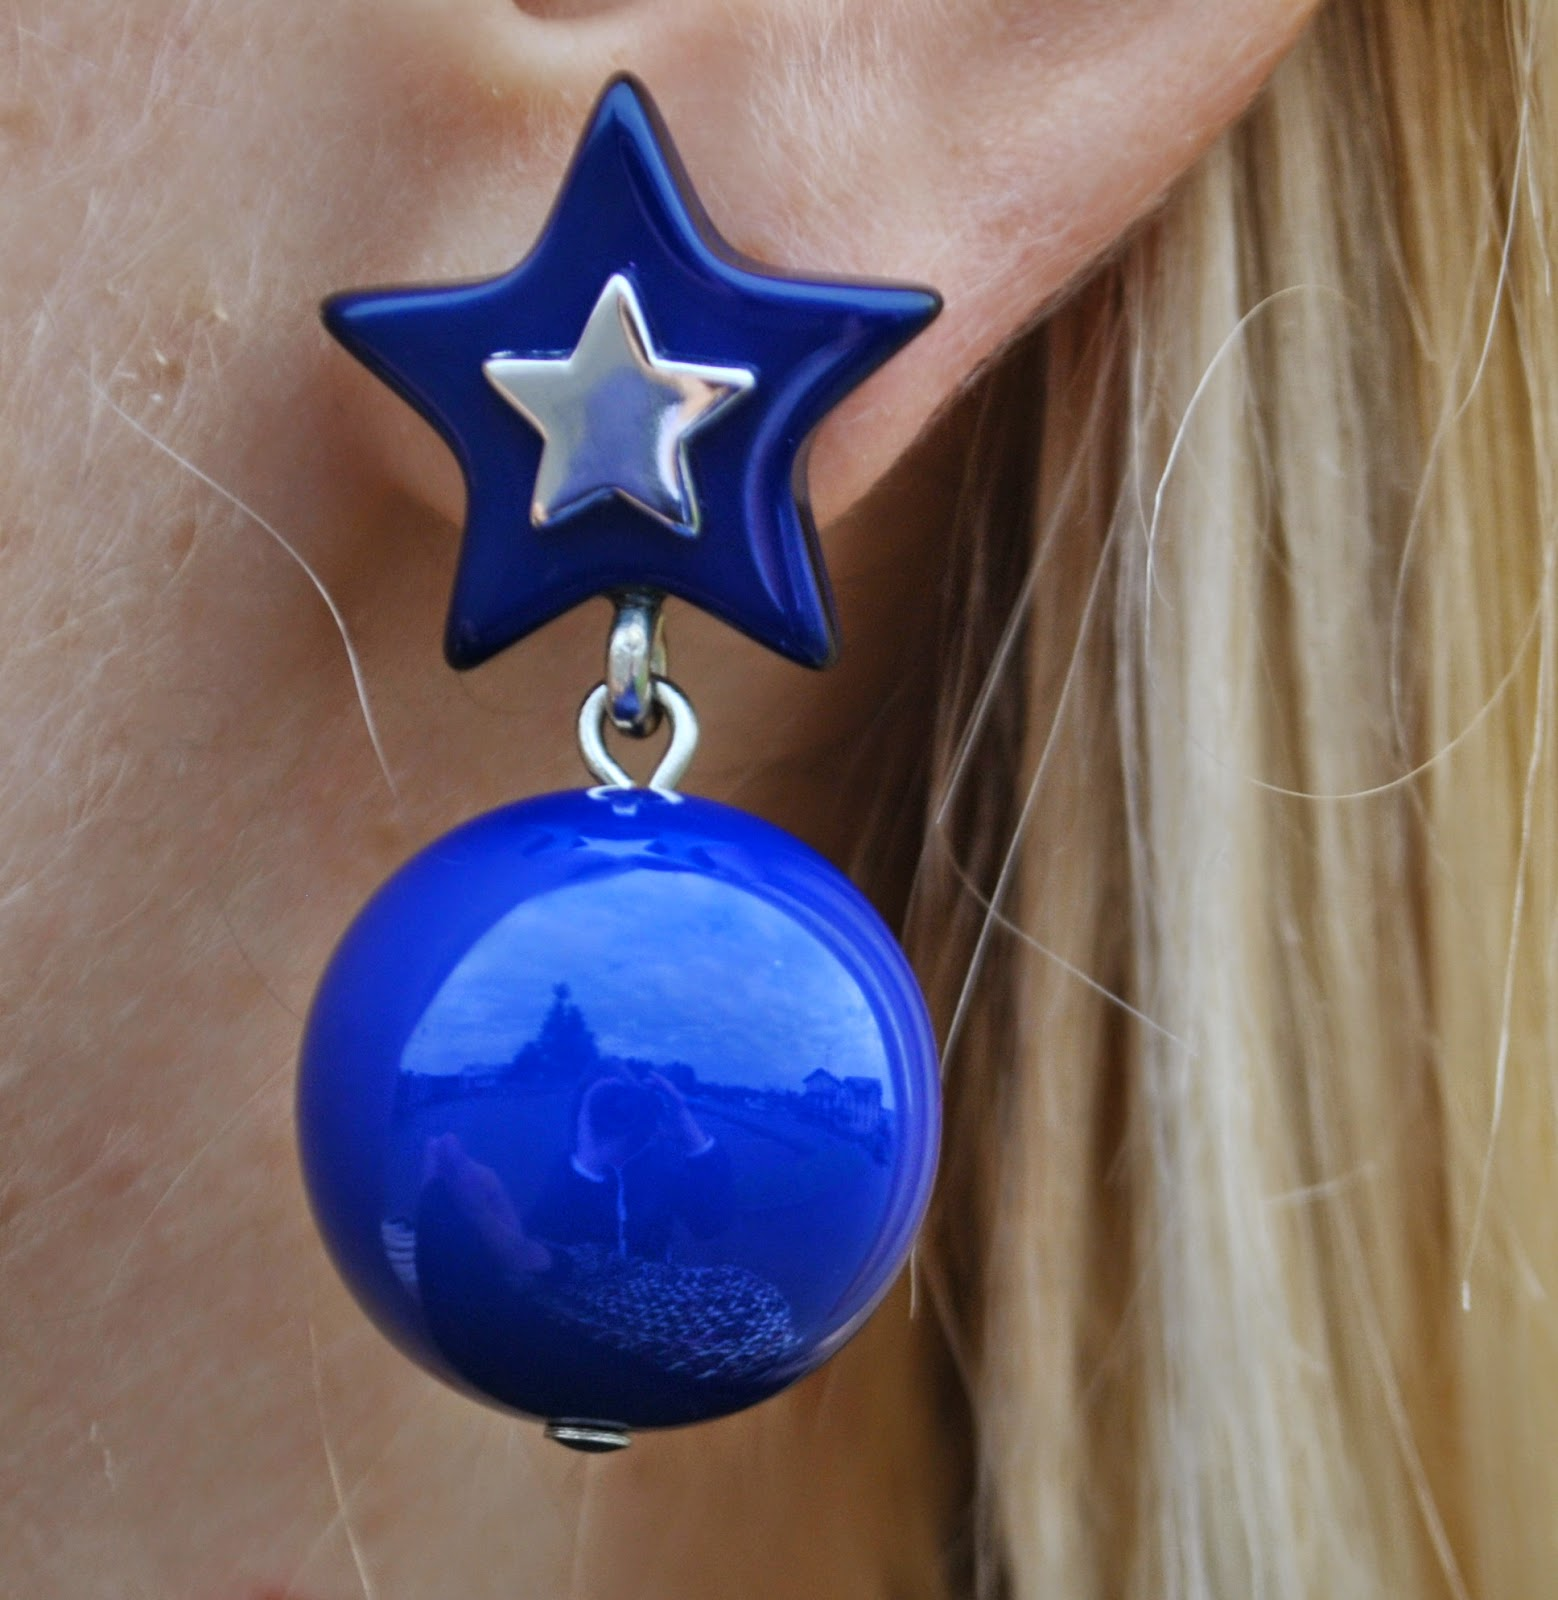 orecchini blu jewels couture jewels couture earrings orecchini etnici majique mariafelicia magno fashion blogger colorblock by felym accessori bijoux accessori novembre fashion blog italiani fashion blogger italiane